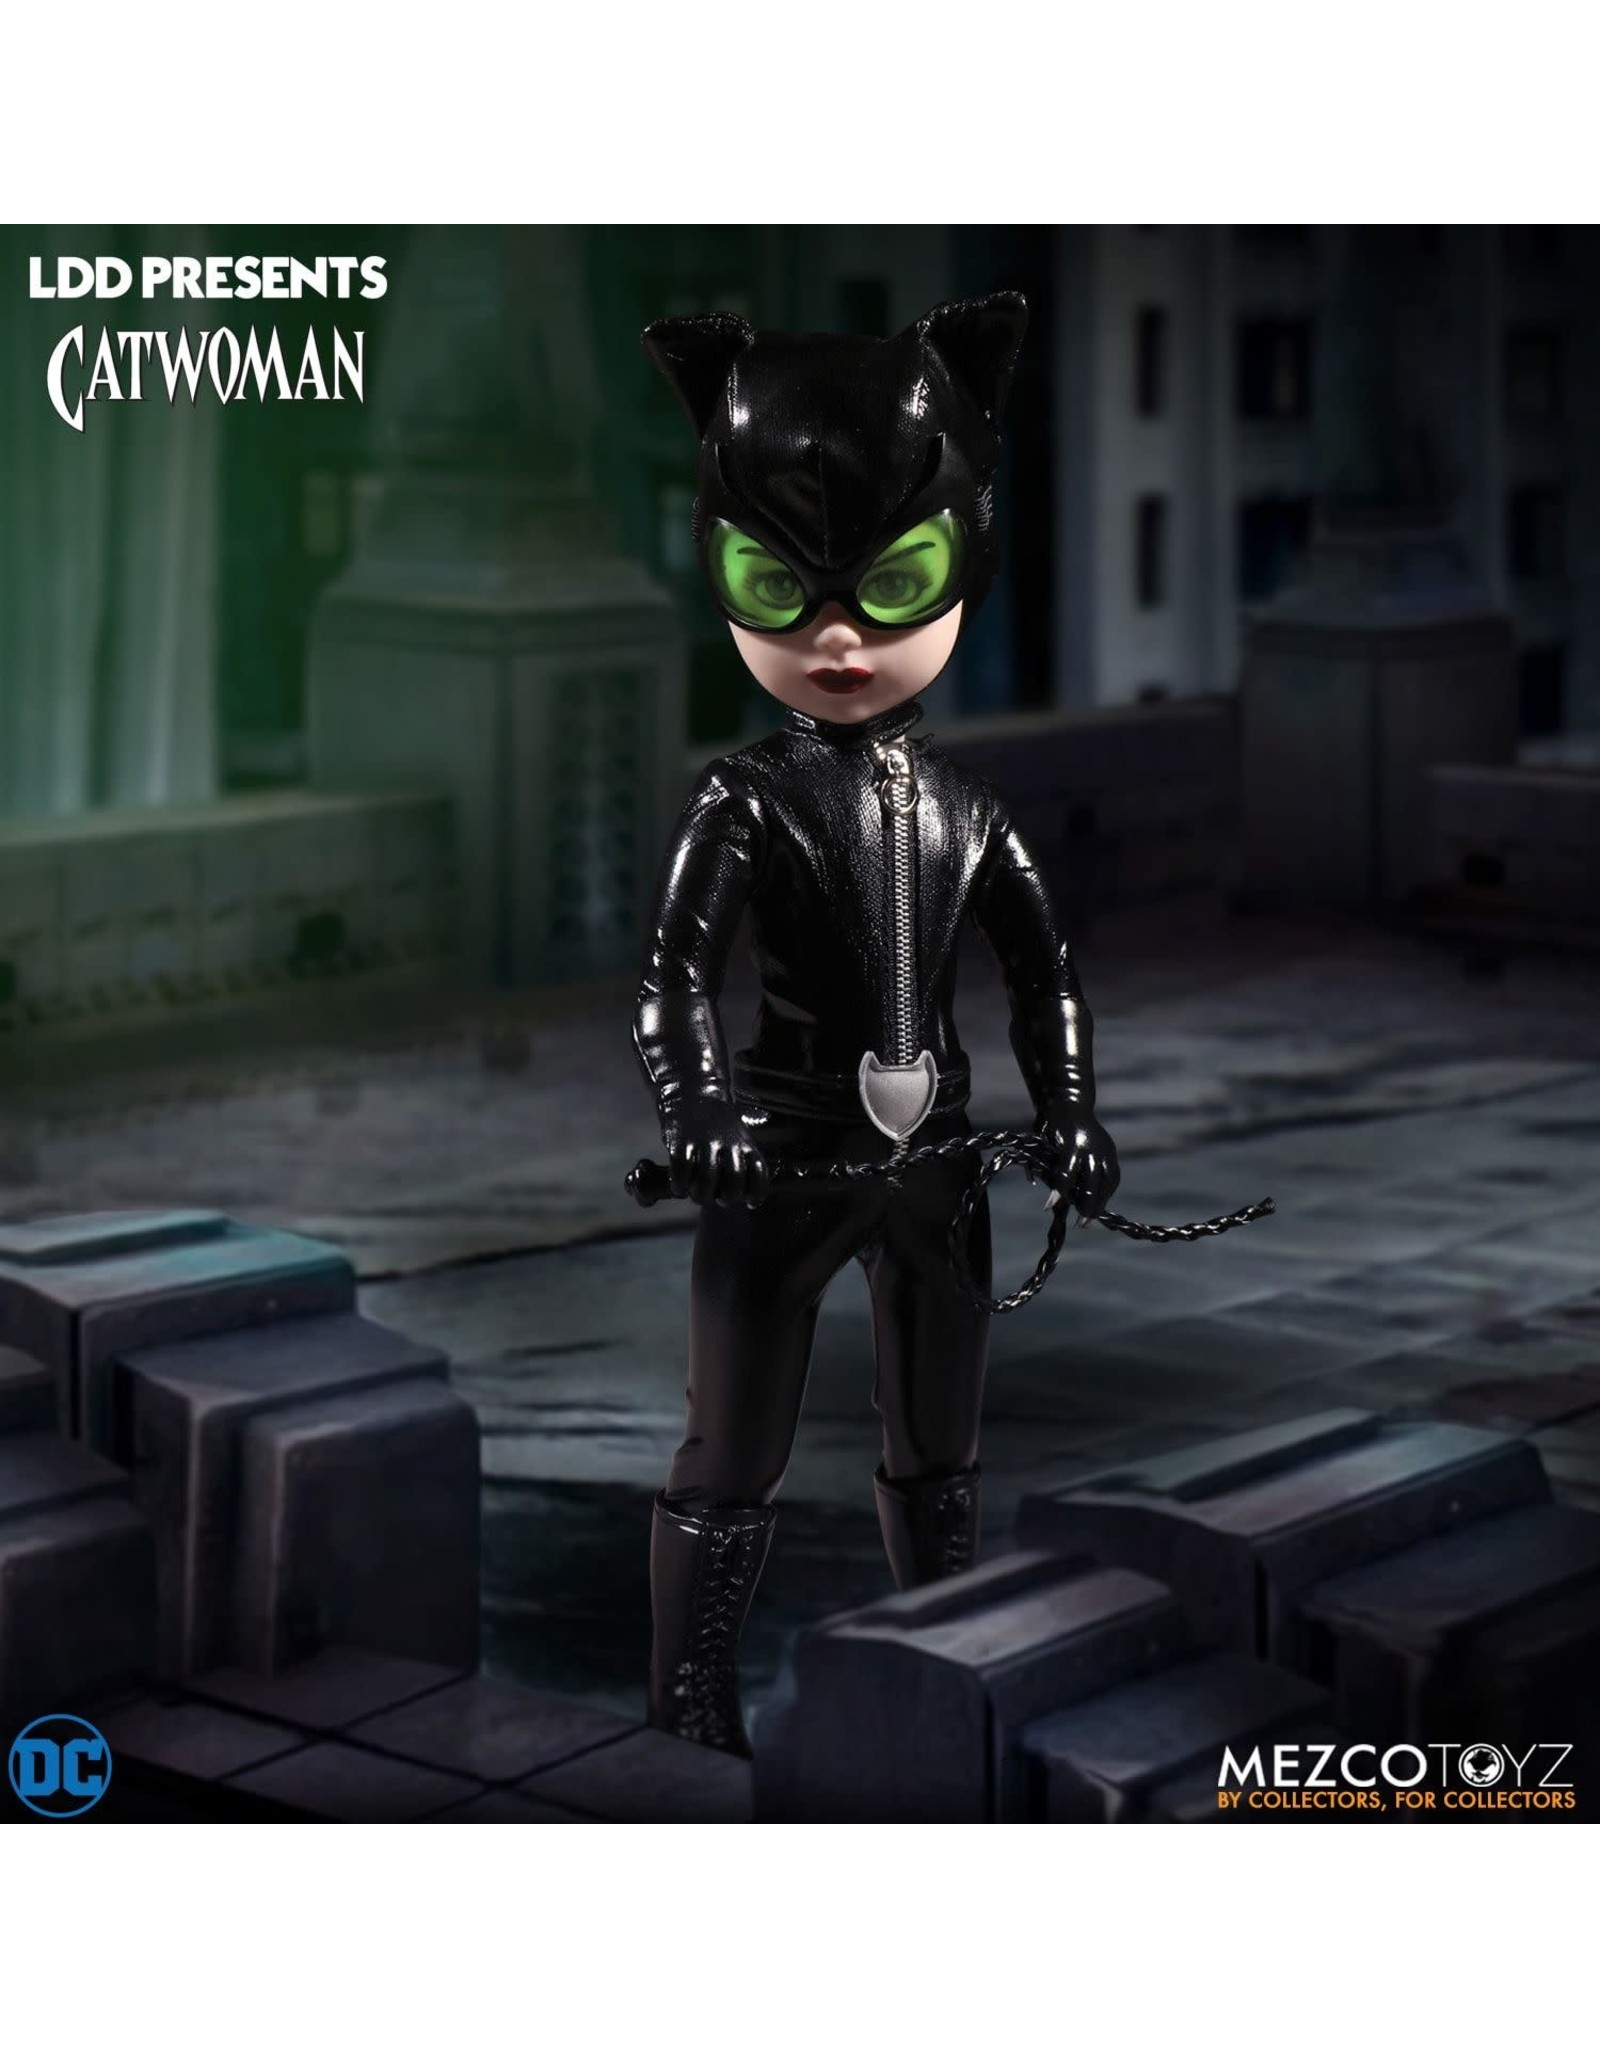 Mezco LDD Presents: DC Comics Catwoman